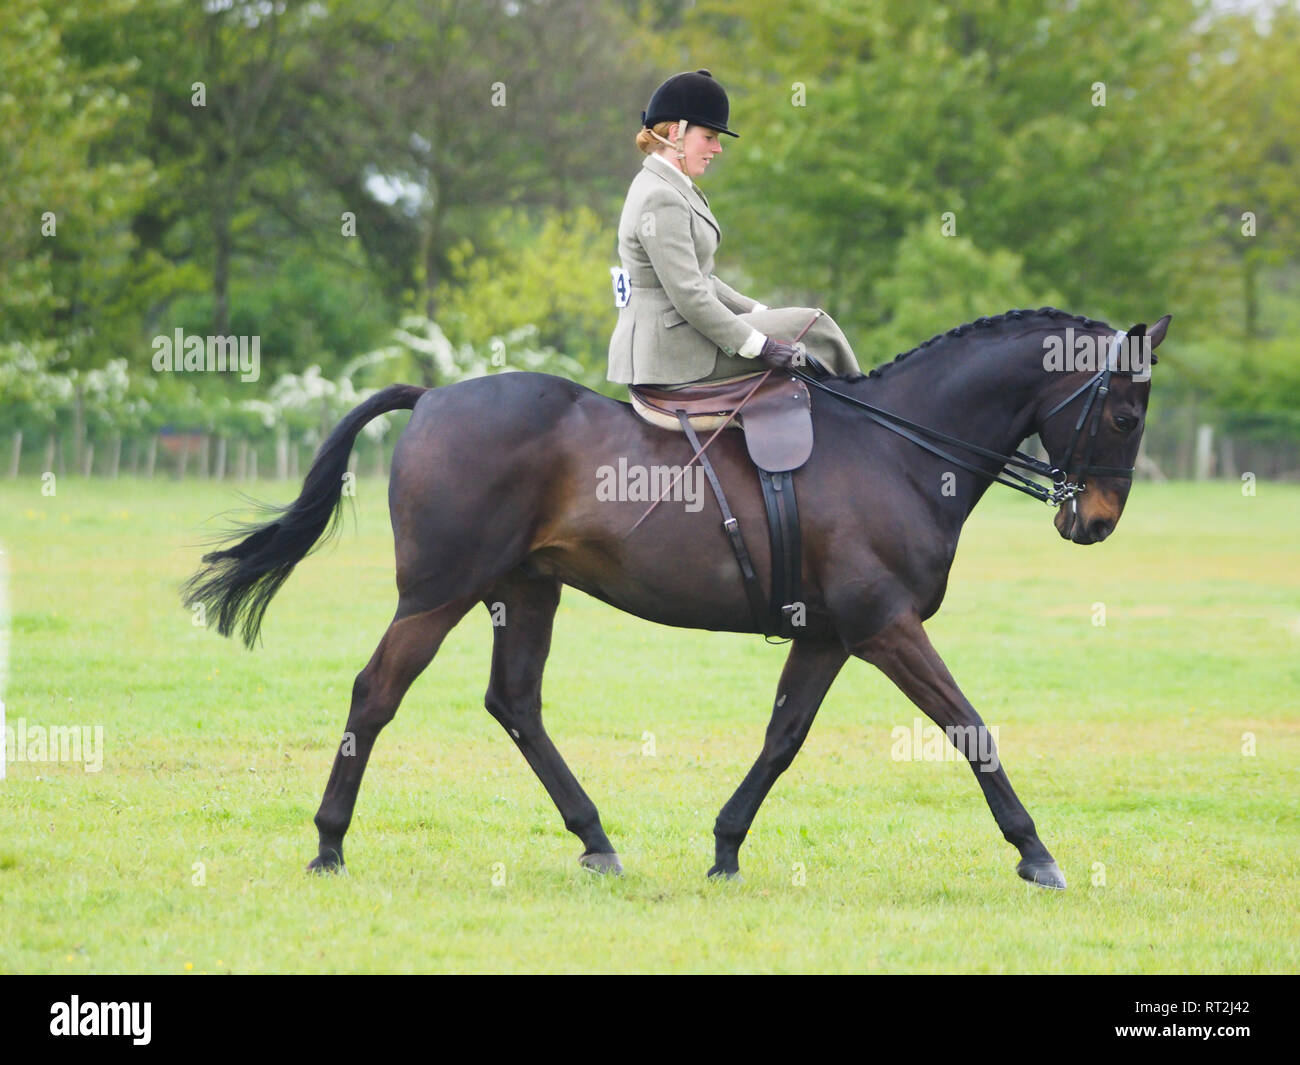 a50ad11a88e5 A lady in traditional hunting outfit rides a bay horse sidesaddle. - Stock  Image